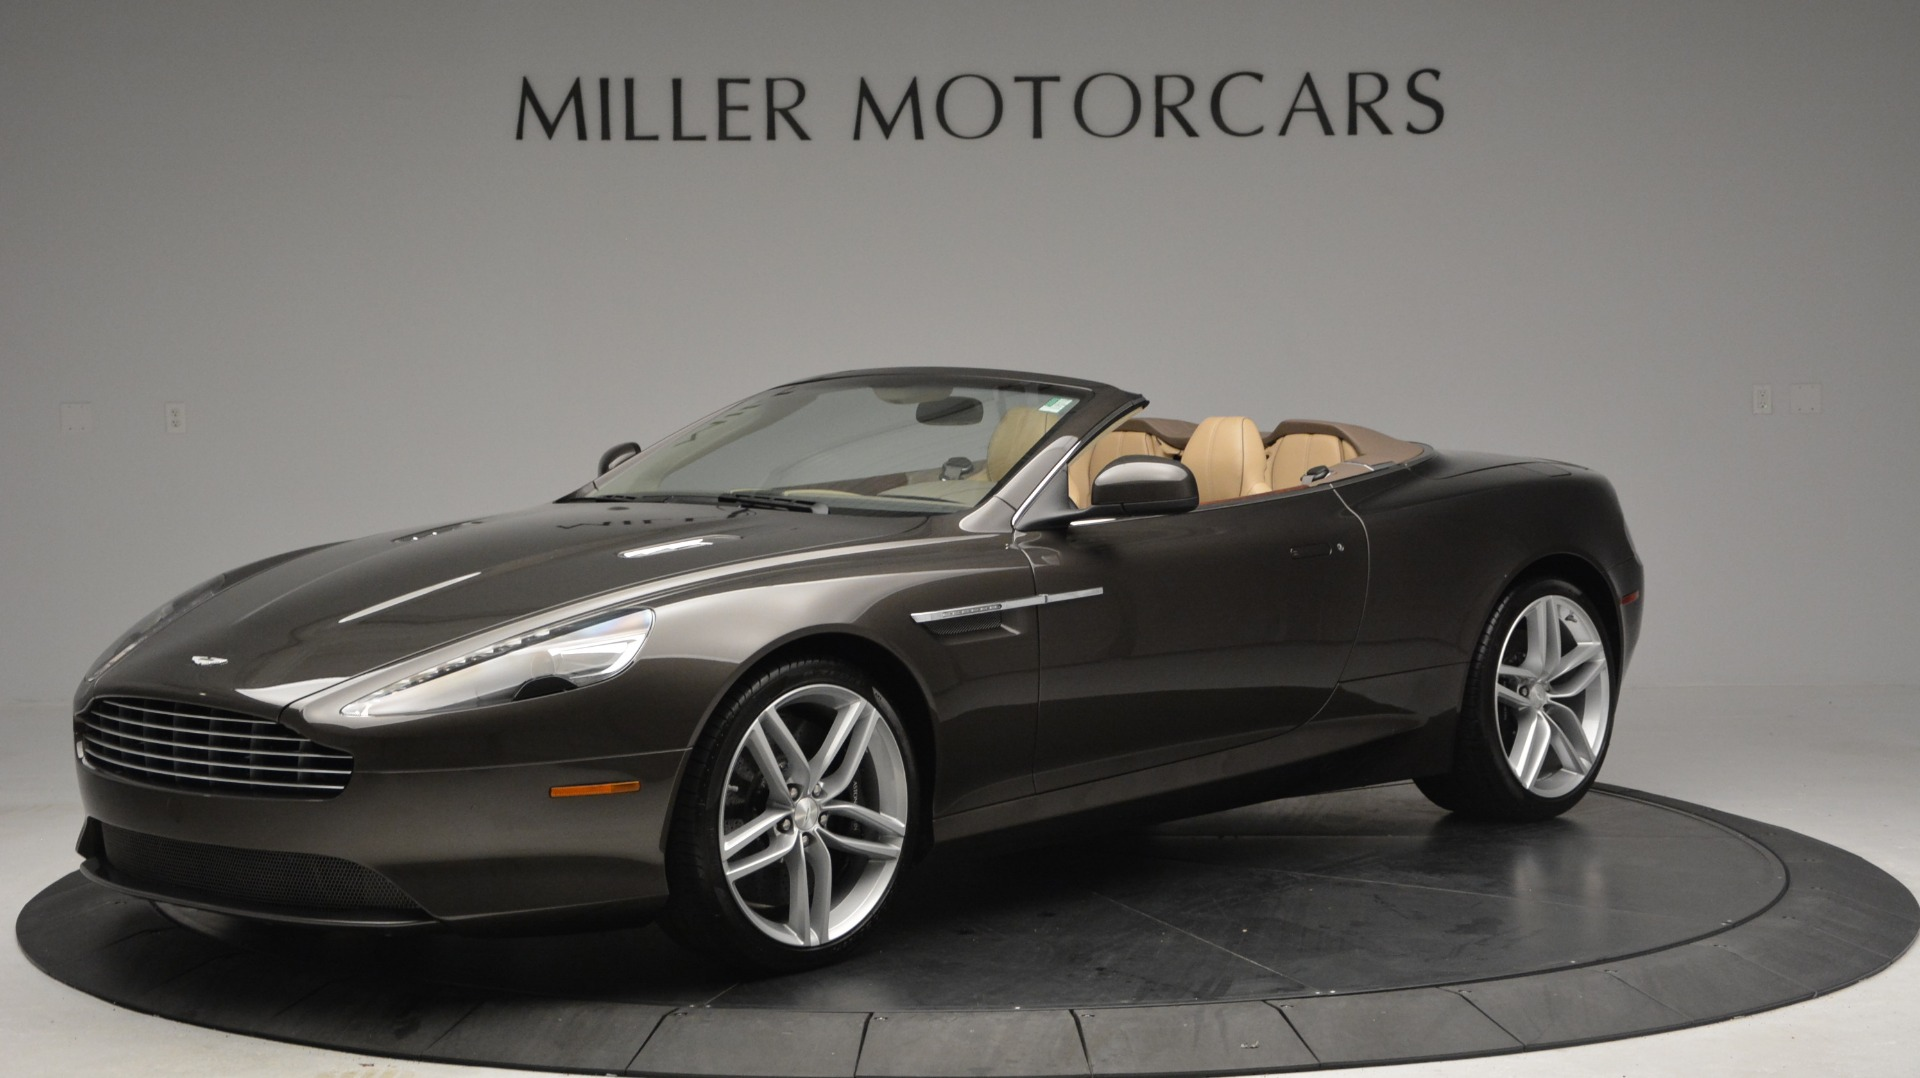 Used 2012 Aston Martin Virage Convertible for sale Sold at Rolls-Royce Motor Cars Greenwich in Greenwich CT 06830 1